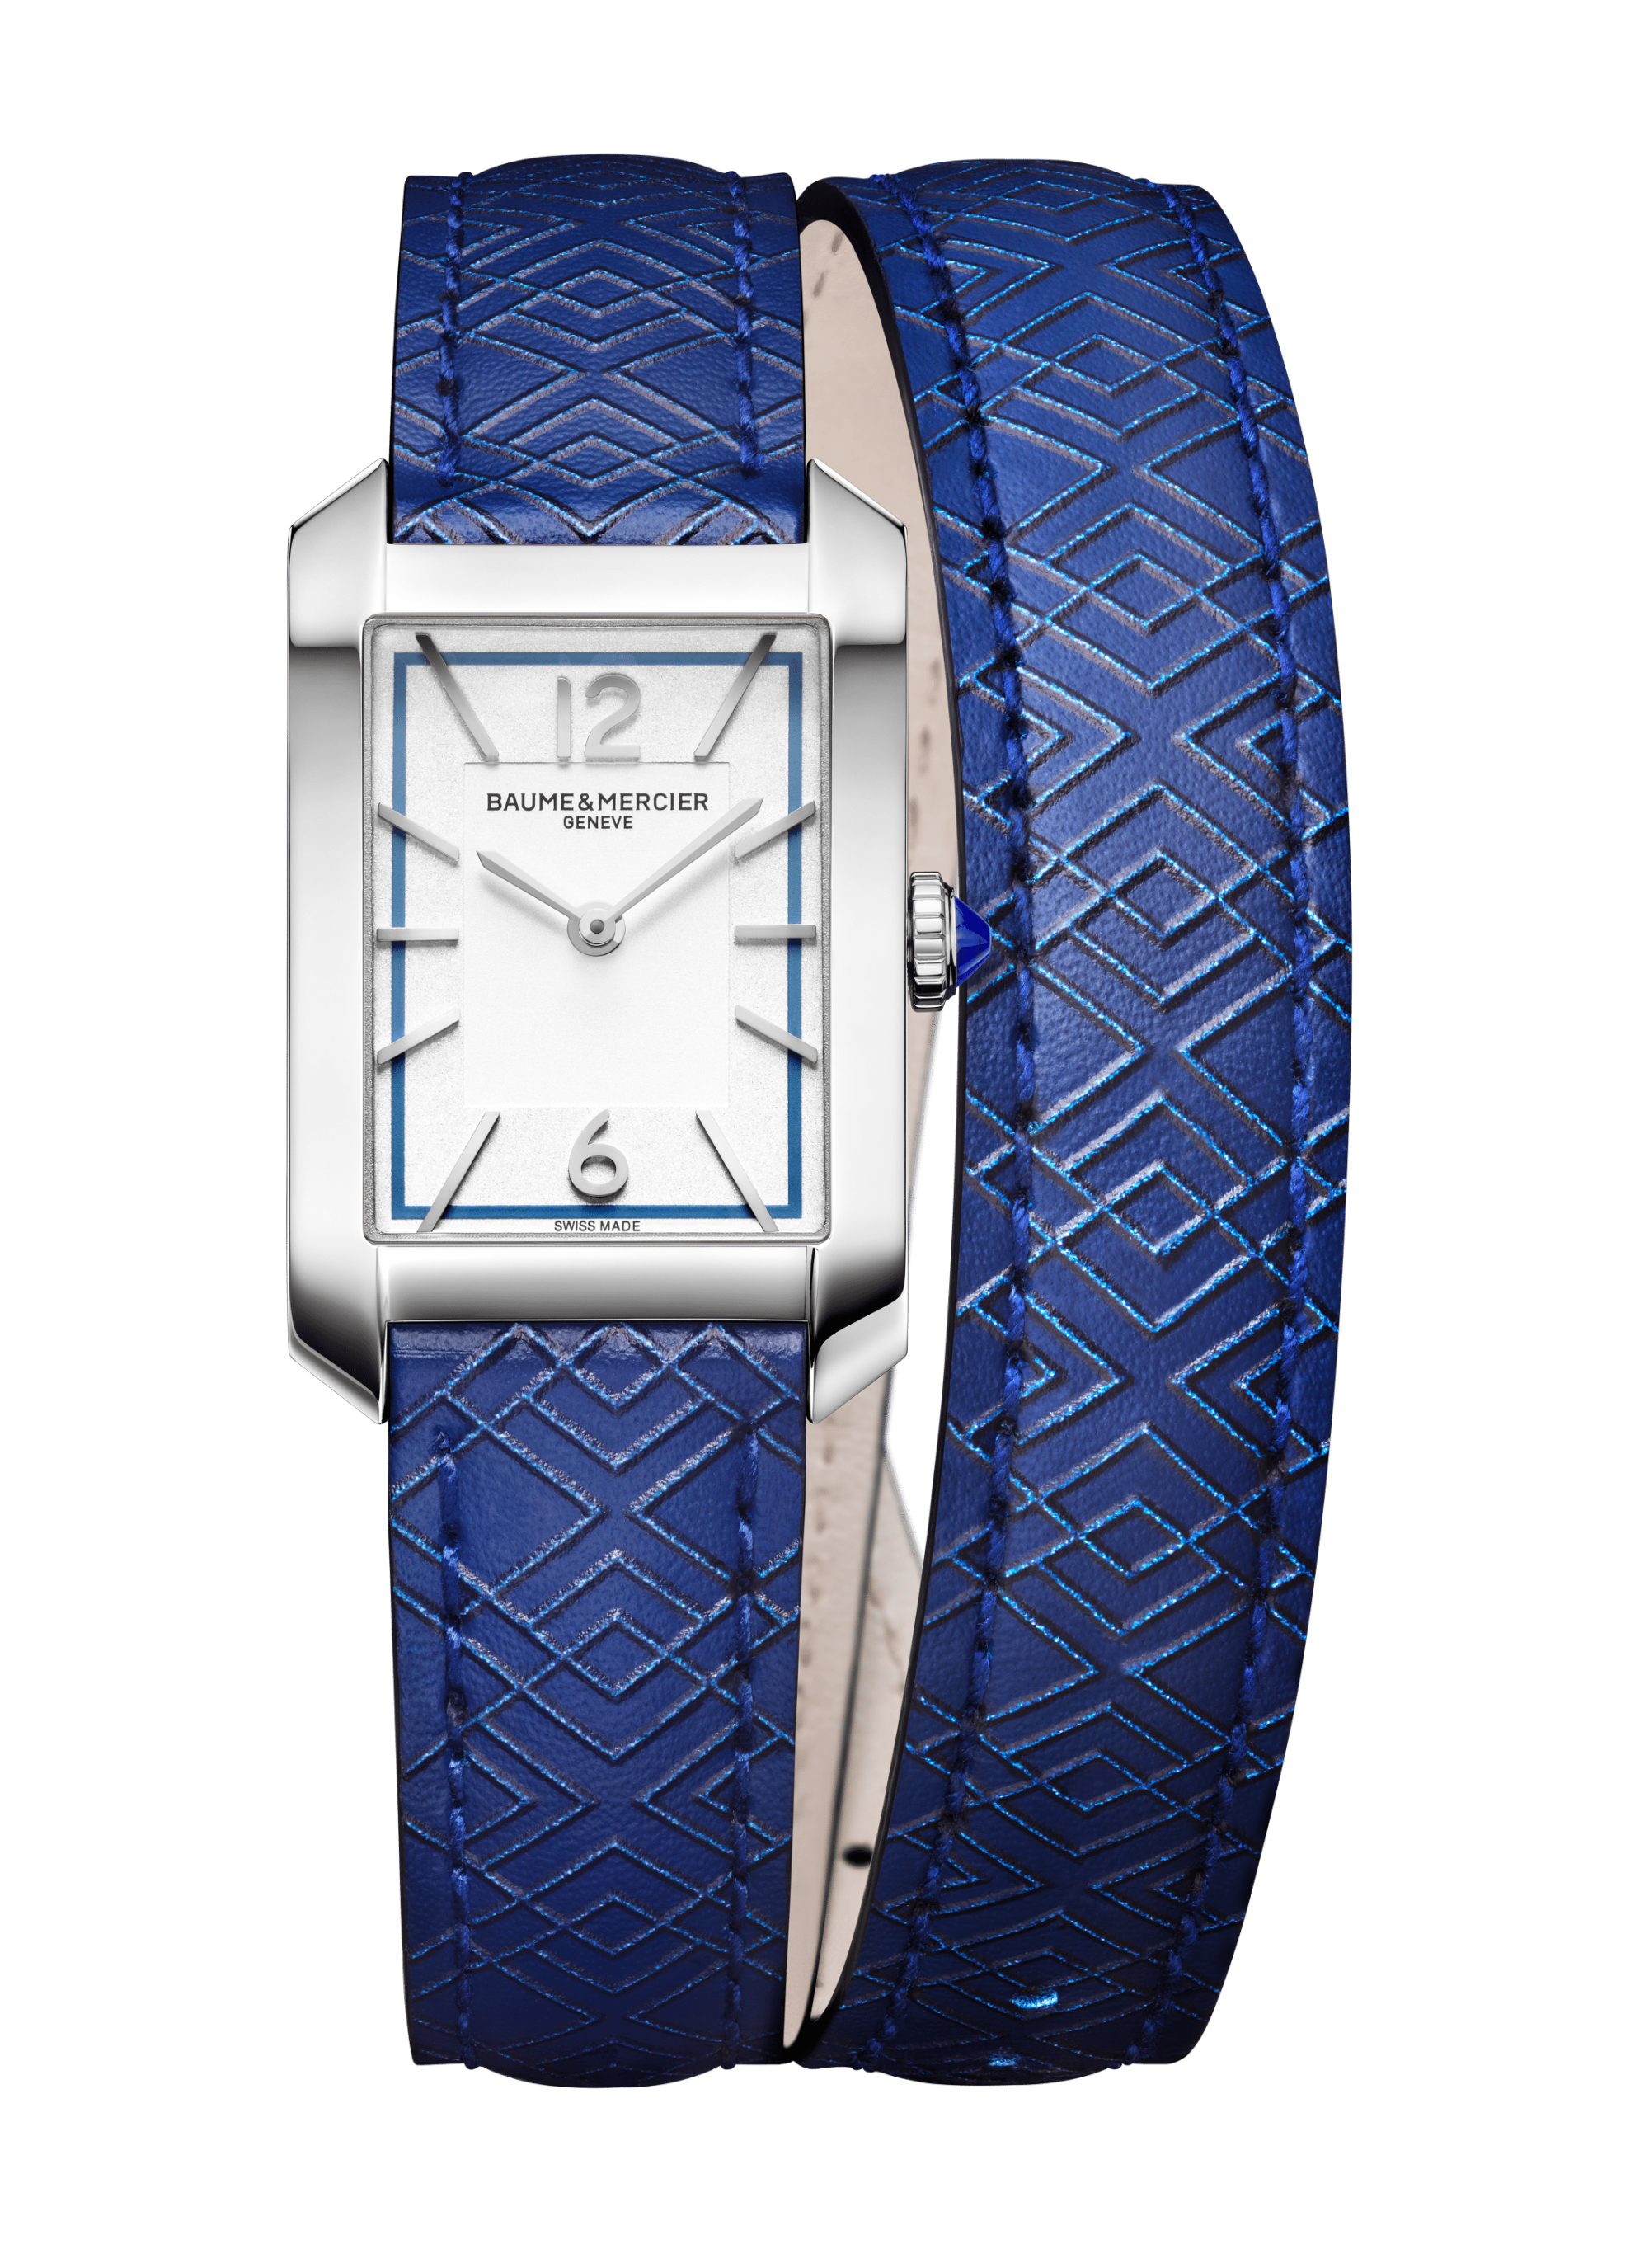 Hampton 10629 Watch for ladies | Check Prices on Baume & Mercier Front -